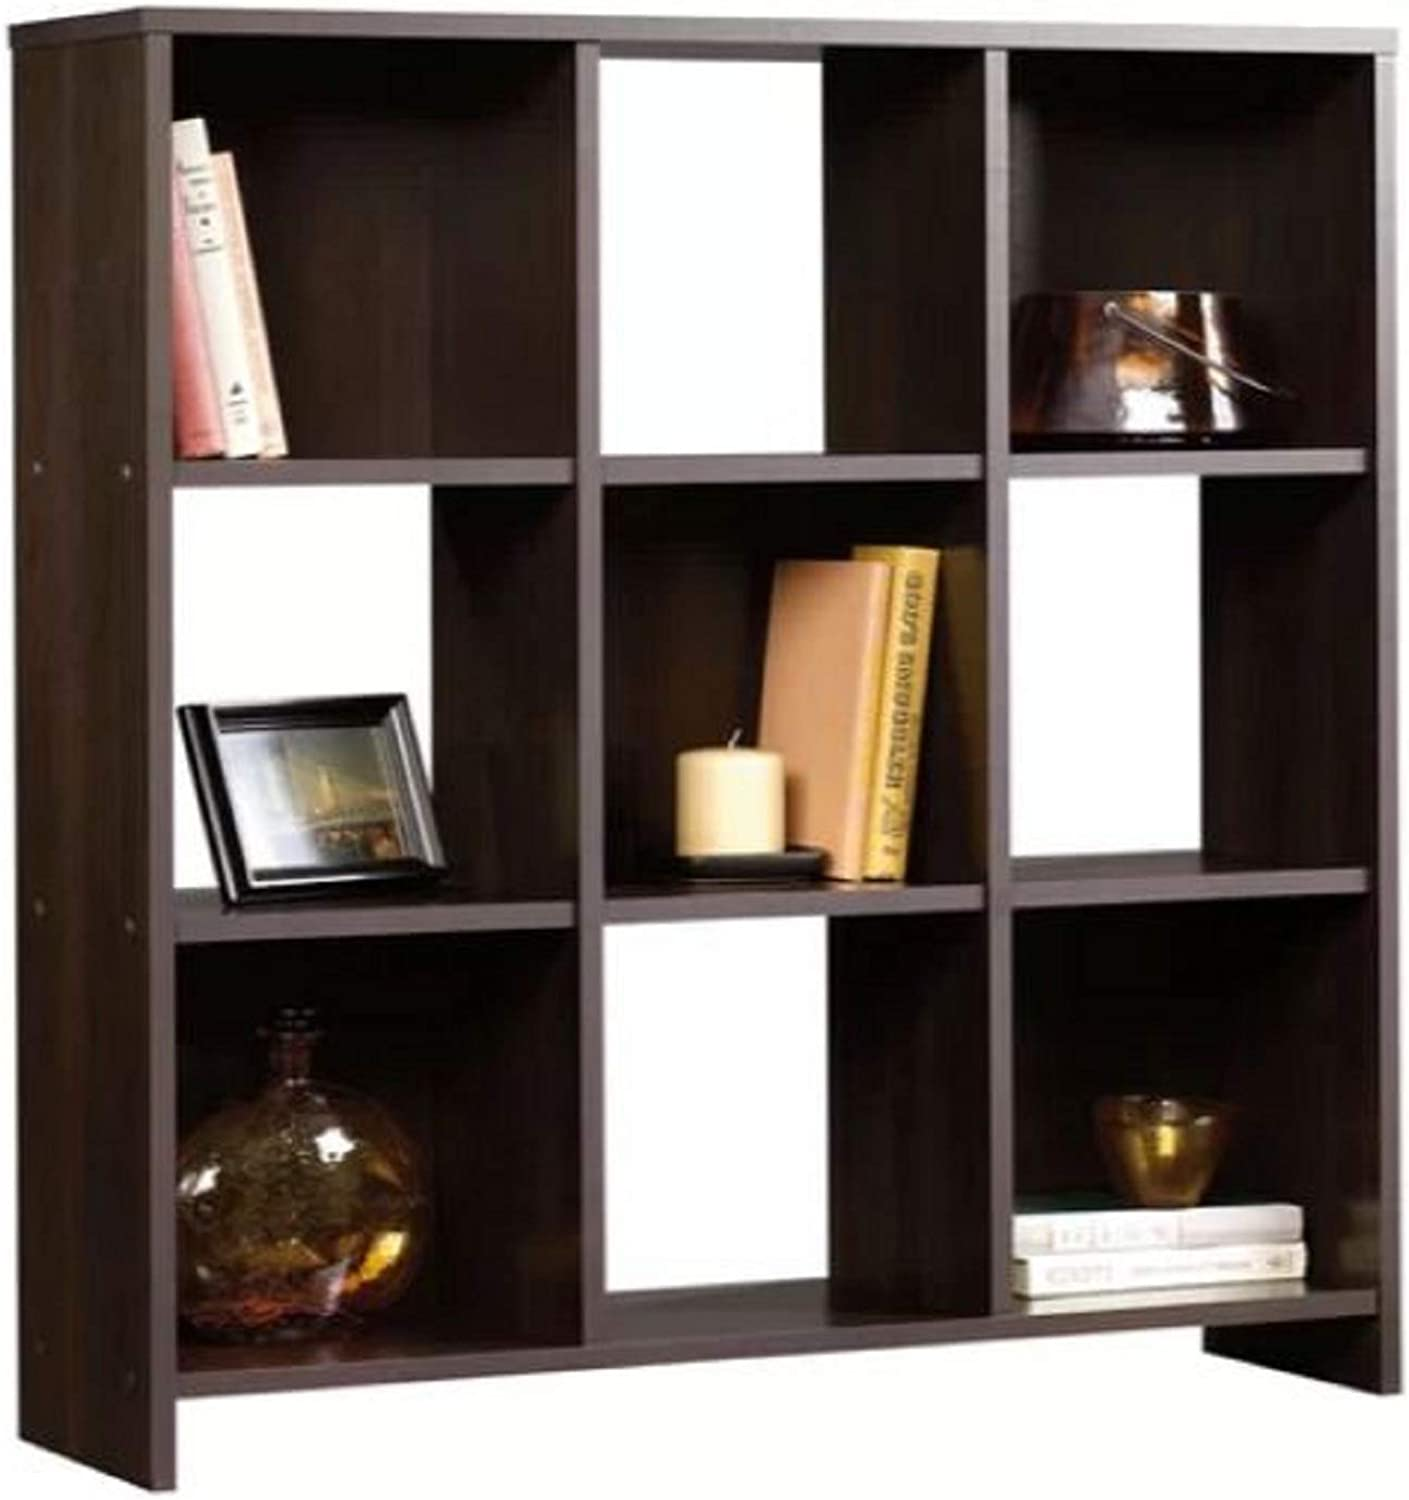 Cube Unit Bookcase. Ryker 5 of Which Have Backing 9 Cube Unit Bookcase Crafted from Manufactured Wood with a Clean-Lined Silhouette and Cinnamon Cherry Finish